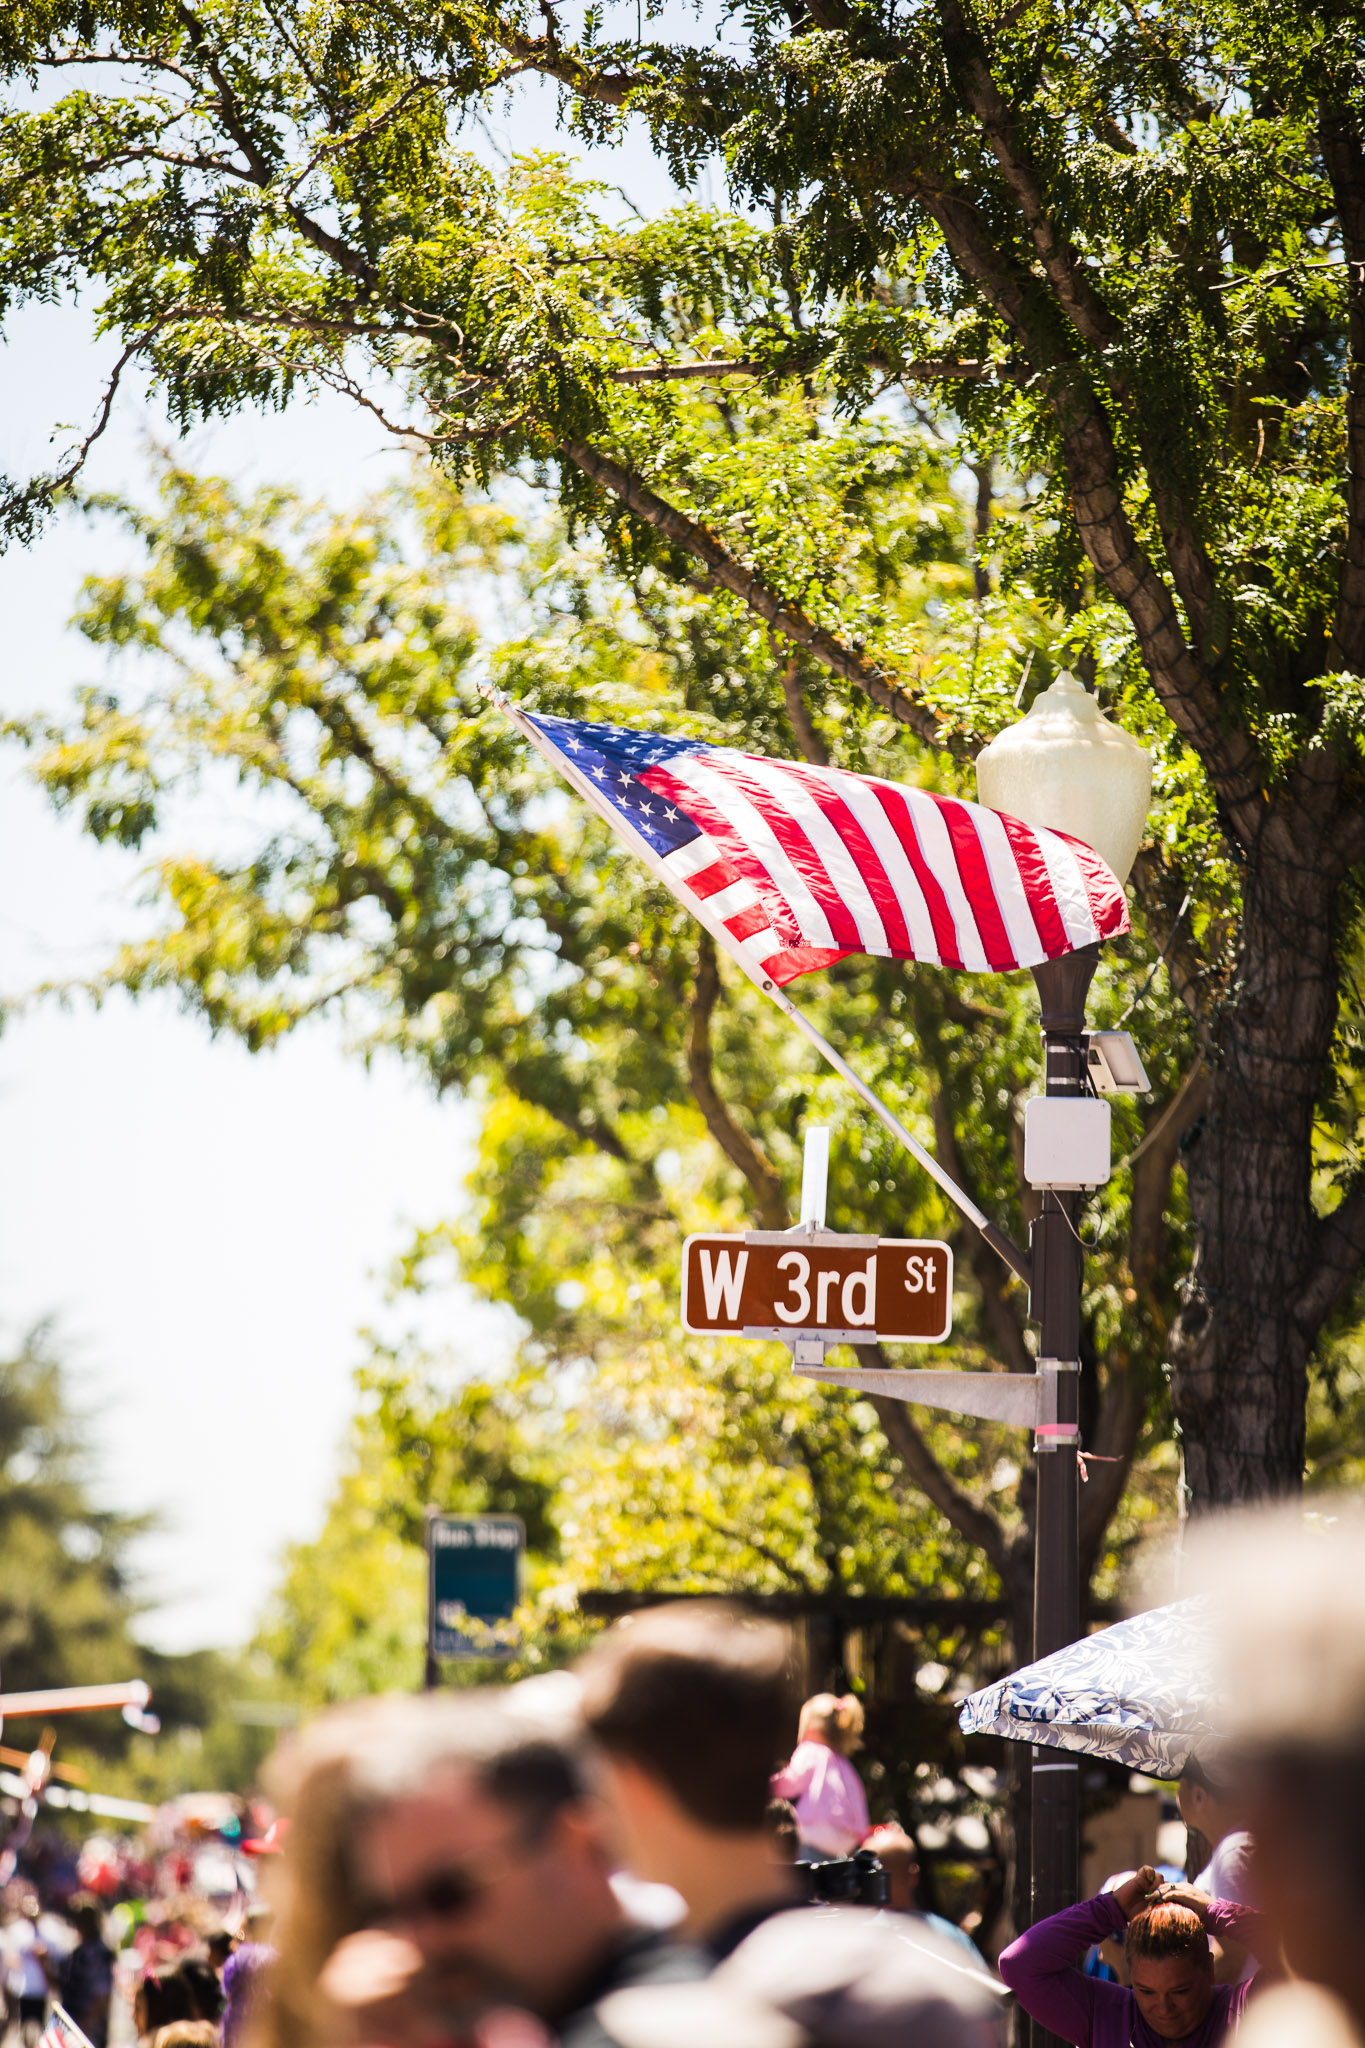 Archer_Inspired_Photography_Morgan_Hill_California_4th_of_july_parade-166.jpg